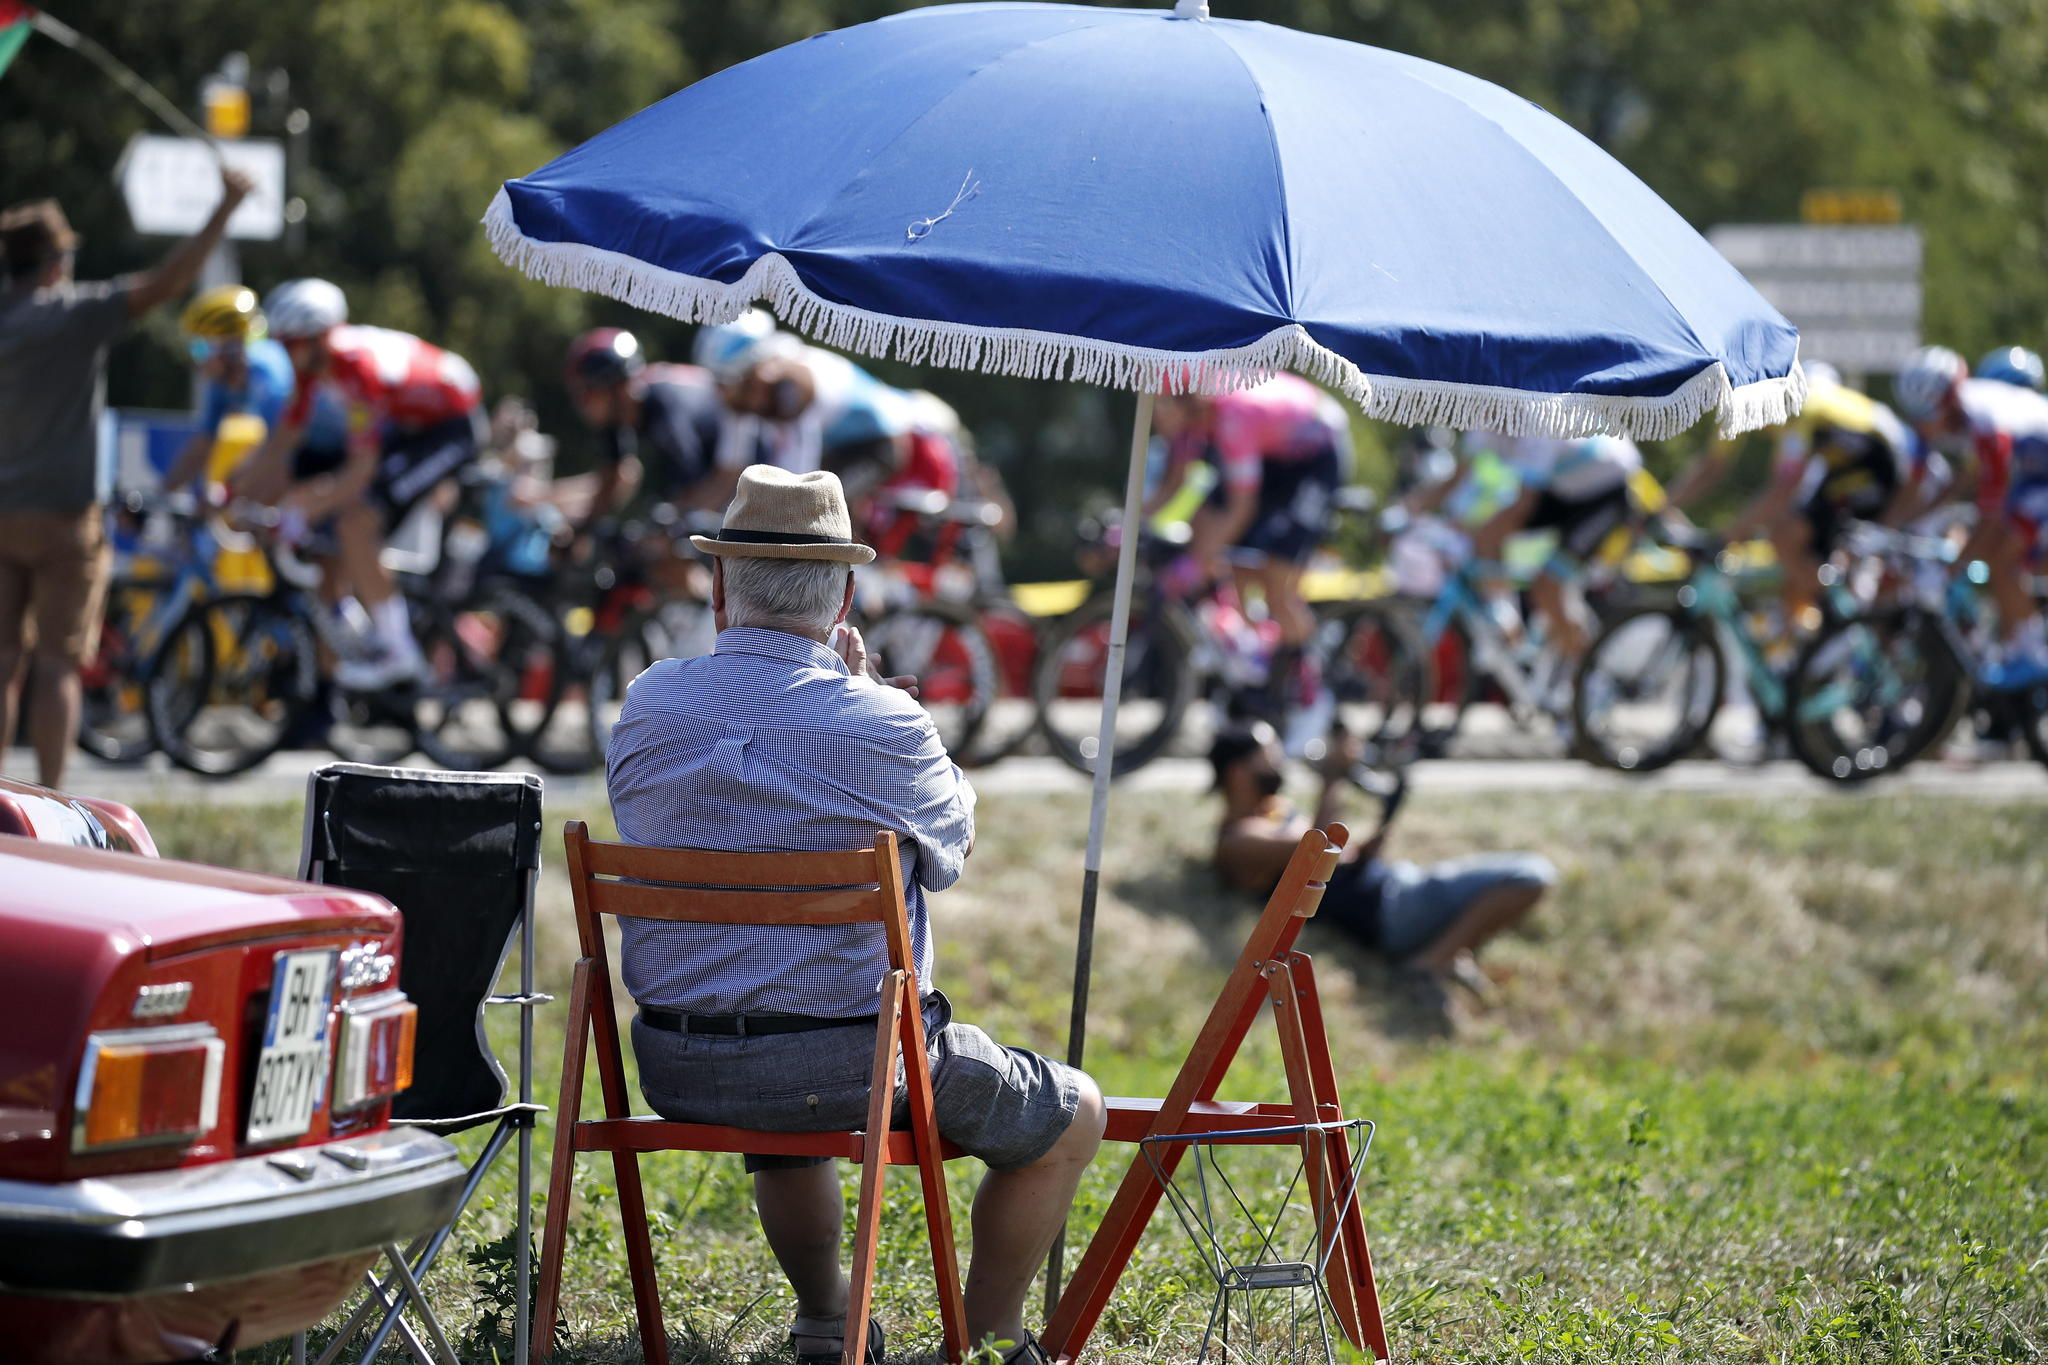 Champagnole (France), 18/09/2020.- A specator sits under a parasol while watching the peloton during the 19th stage of the 107th edition of the lt;HIT gt;Tour lt;/HIT gt; de France cycling race over 166.5km from Bourg-en-Bresse to Champagnole, France, 18 September 2020. (Ciclismo, Francia) EFE/EPA/SEBASTIEN NOGIER